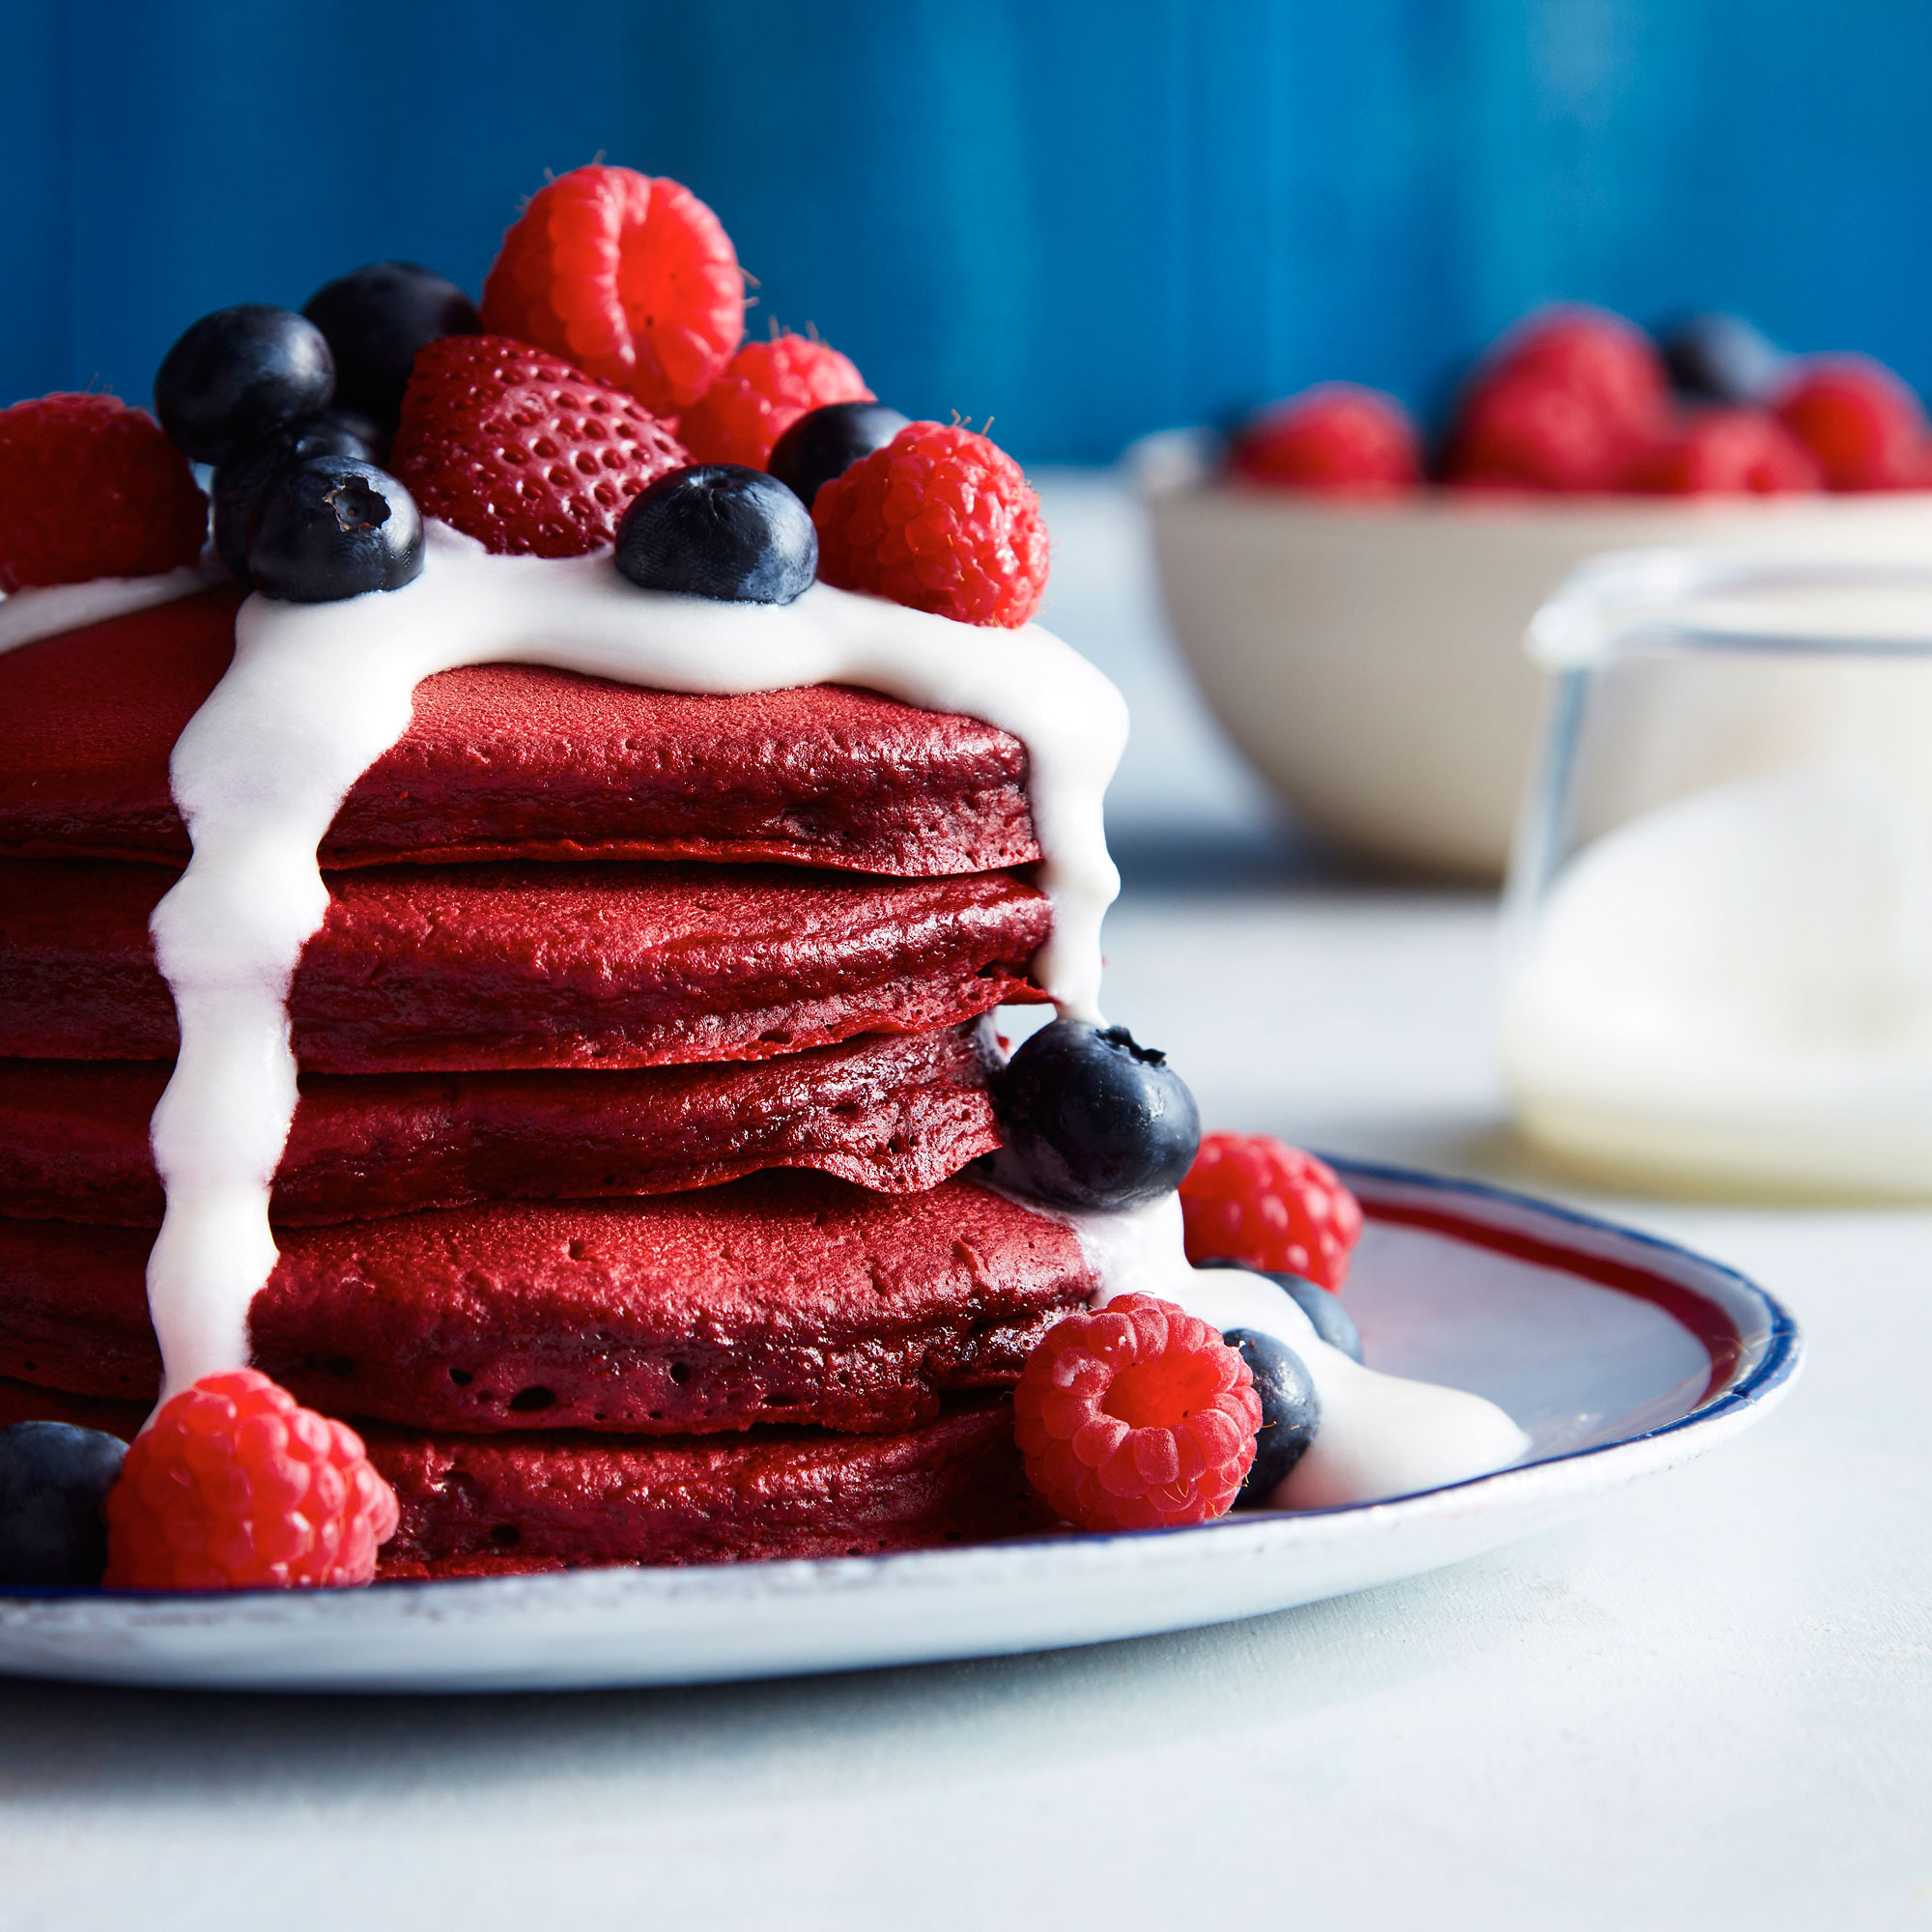 RED VELVET PANCAKES WITH COCONUT SYRUP